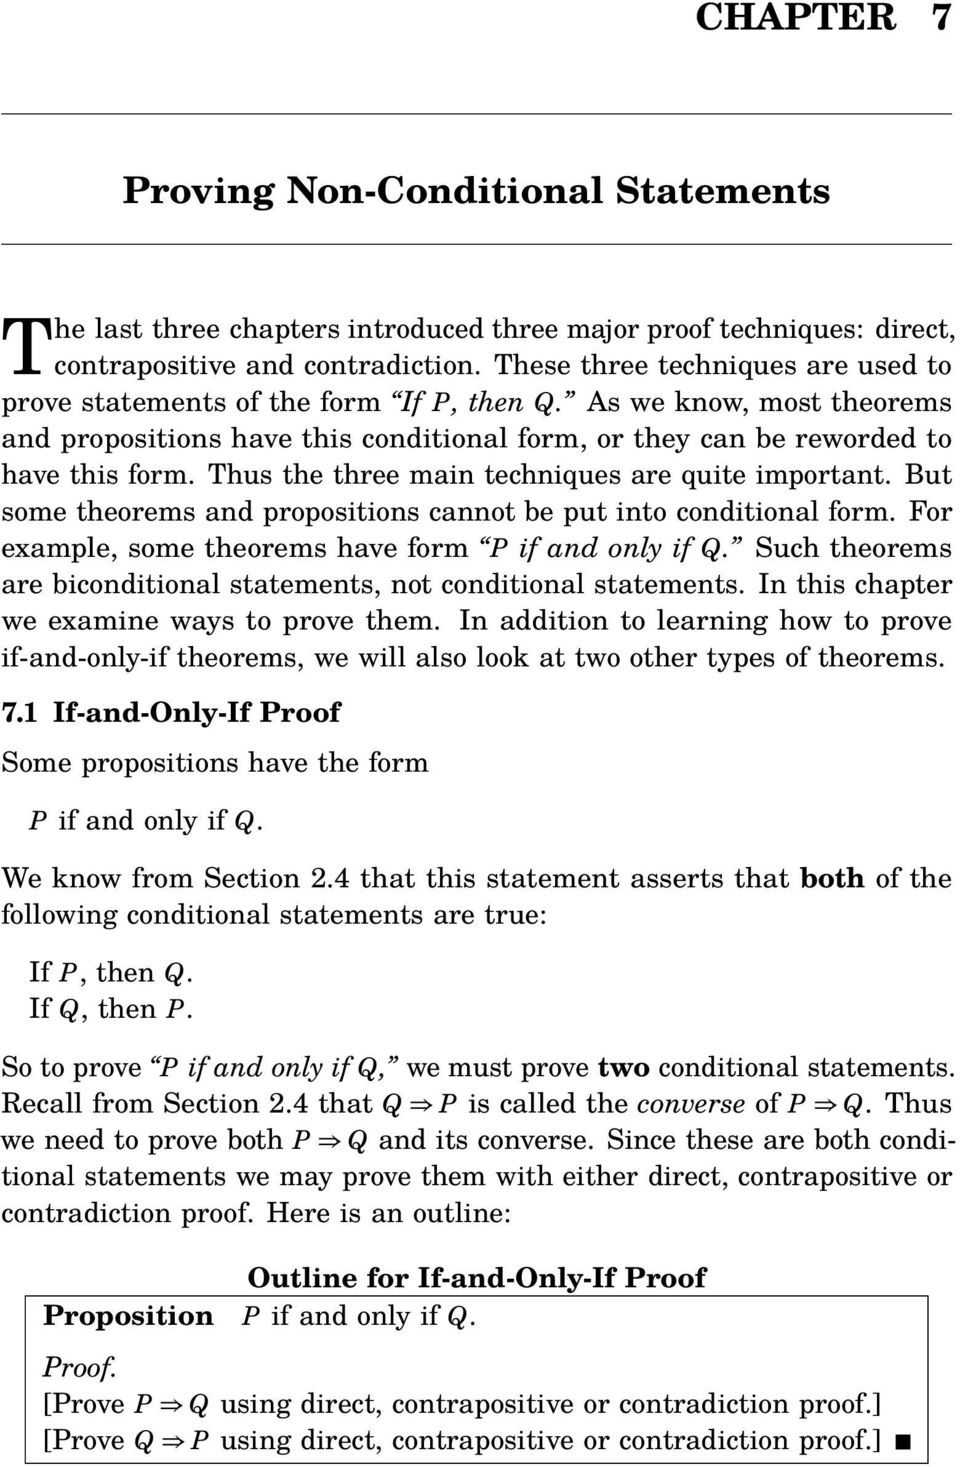 Thus the three main techniques are quite important. But some theorems and propositions cannot be put into conditional form. For example, some theorems have form P if and only if Q.